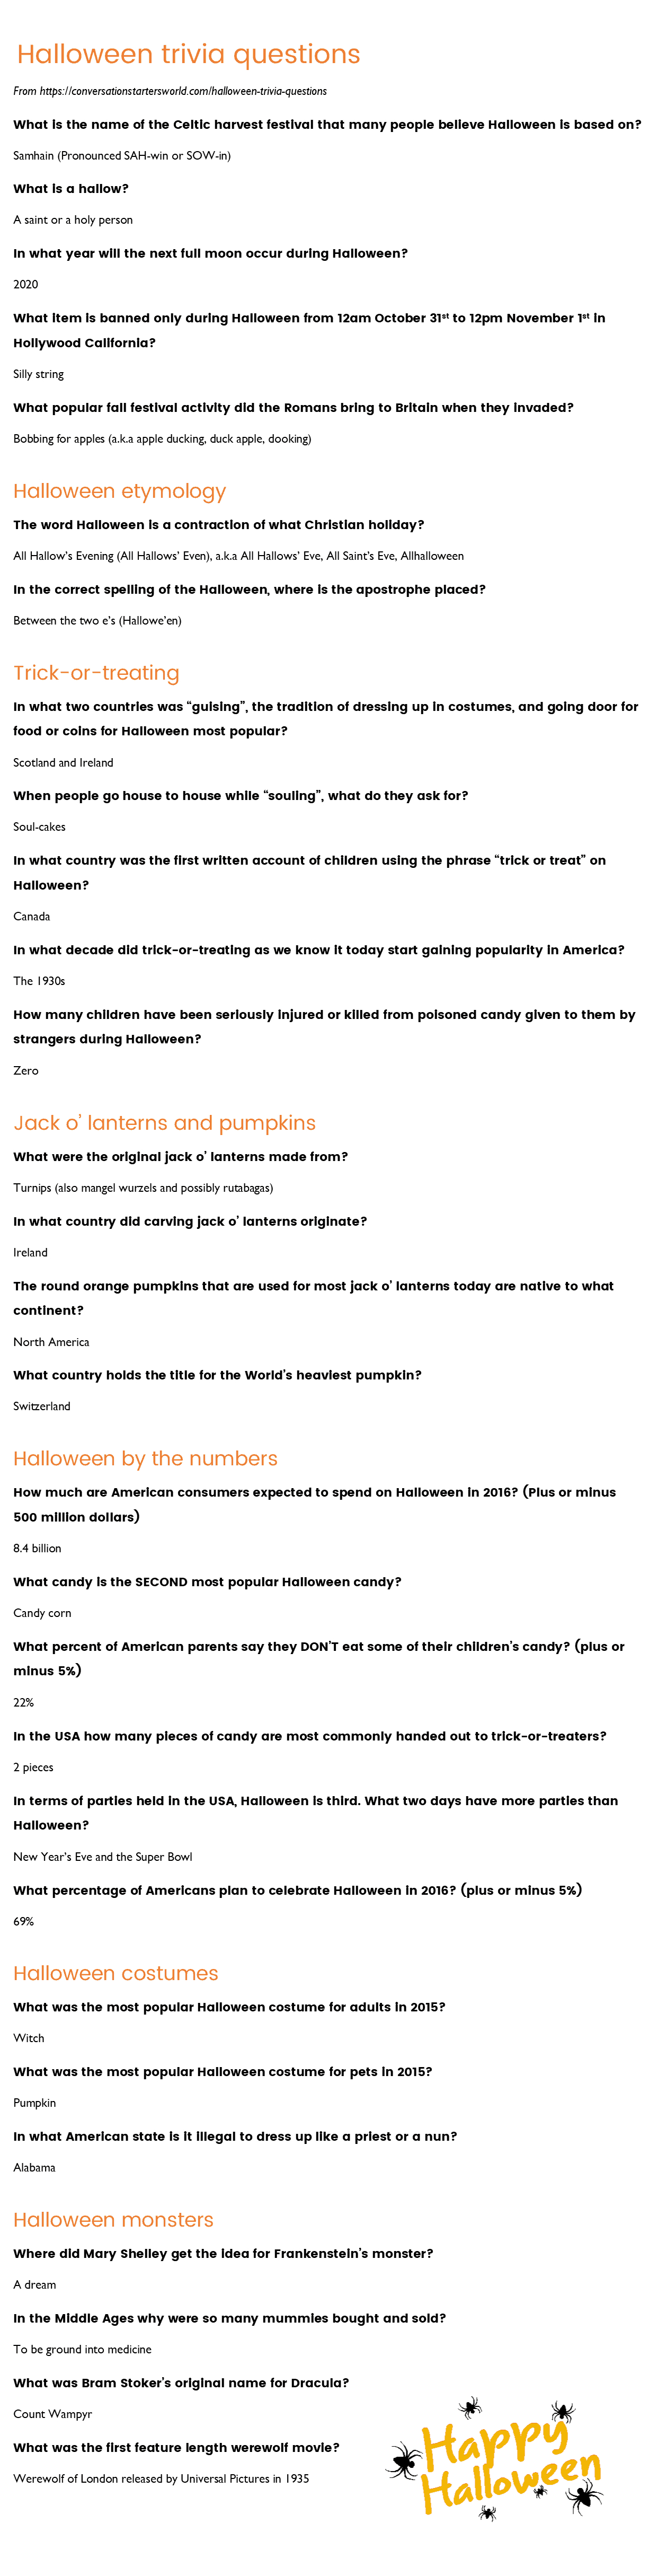 29 Challenging Halloween Trivia Questions - How Many Can You Answer? - Free Printable Trivia Questions And Answers